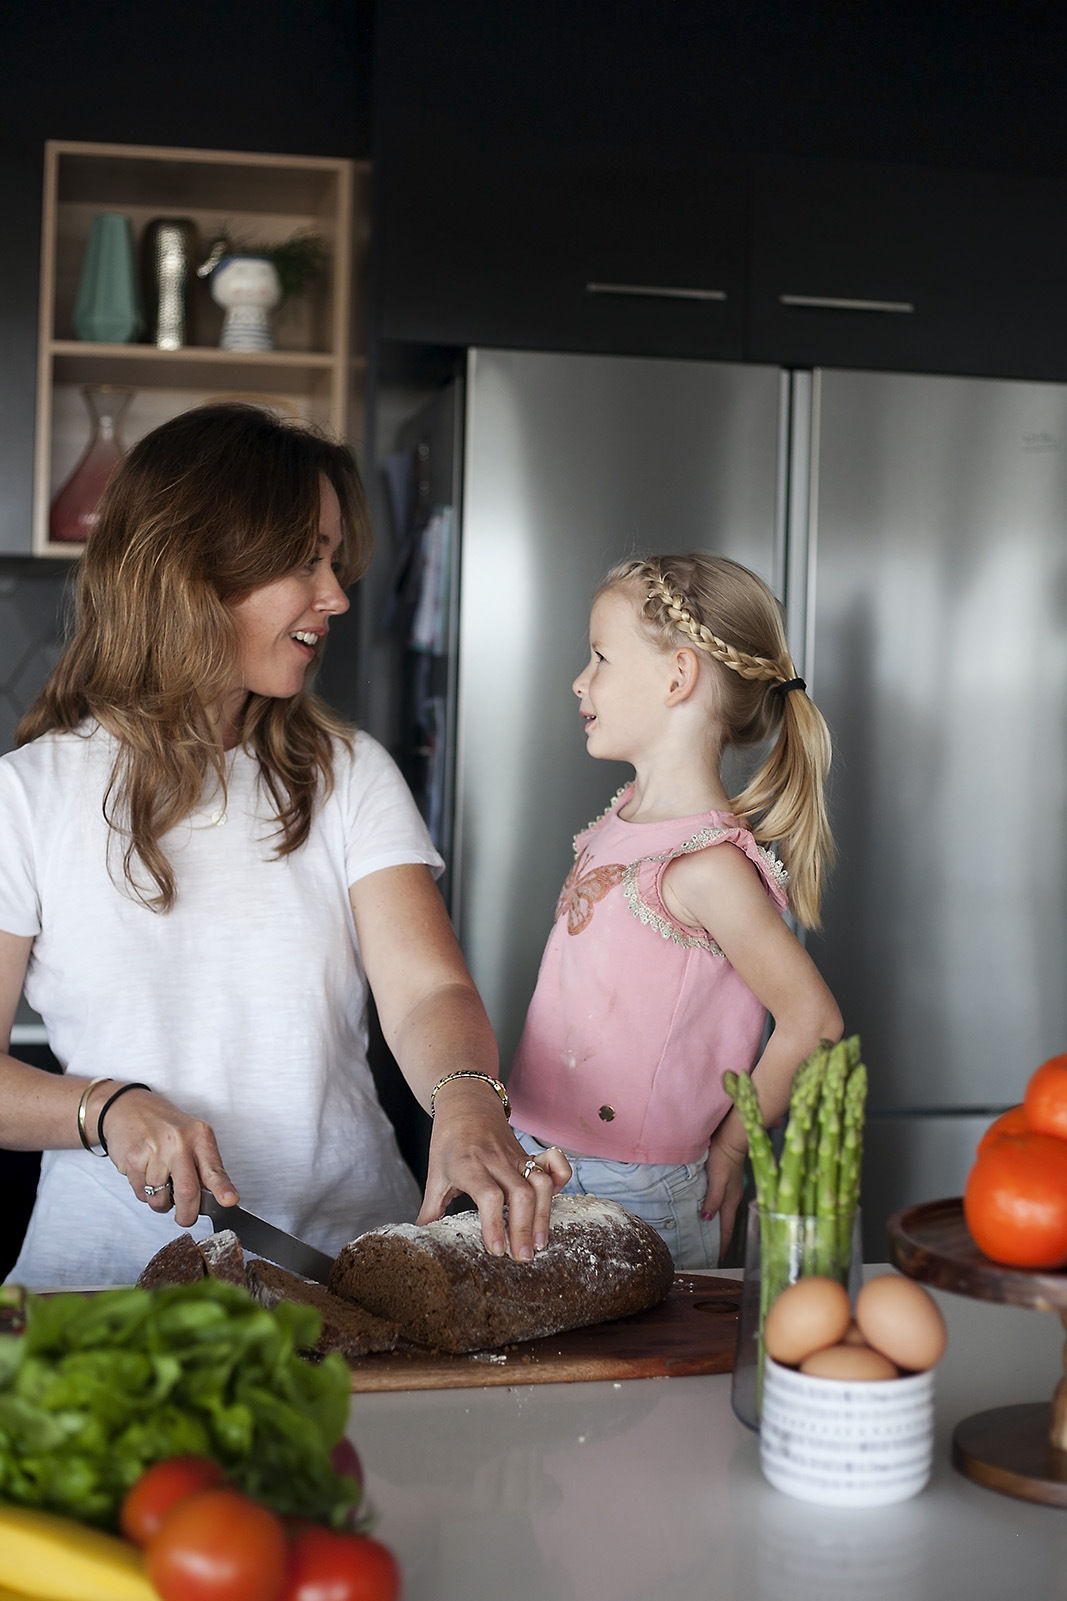 Photo of Erin O'Neill APD non diet dietitian with small child slicing some bread in the kitchen